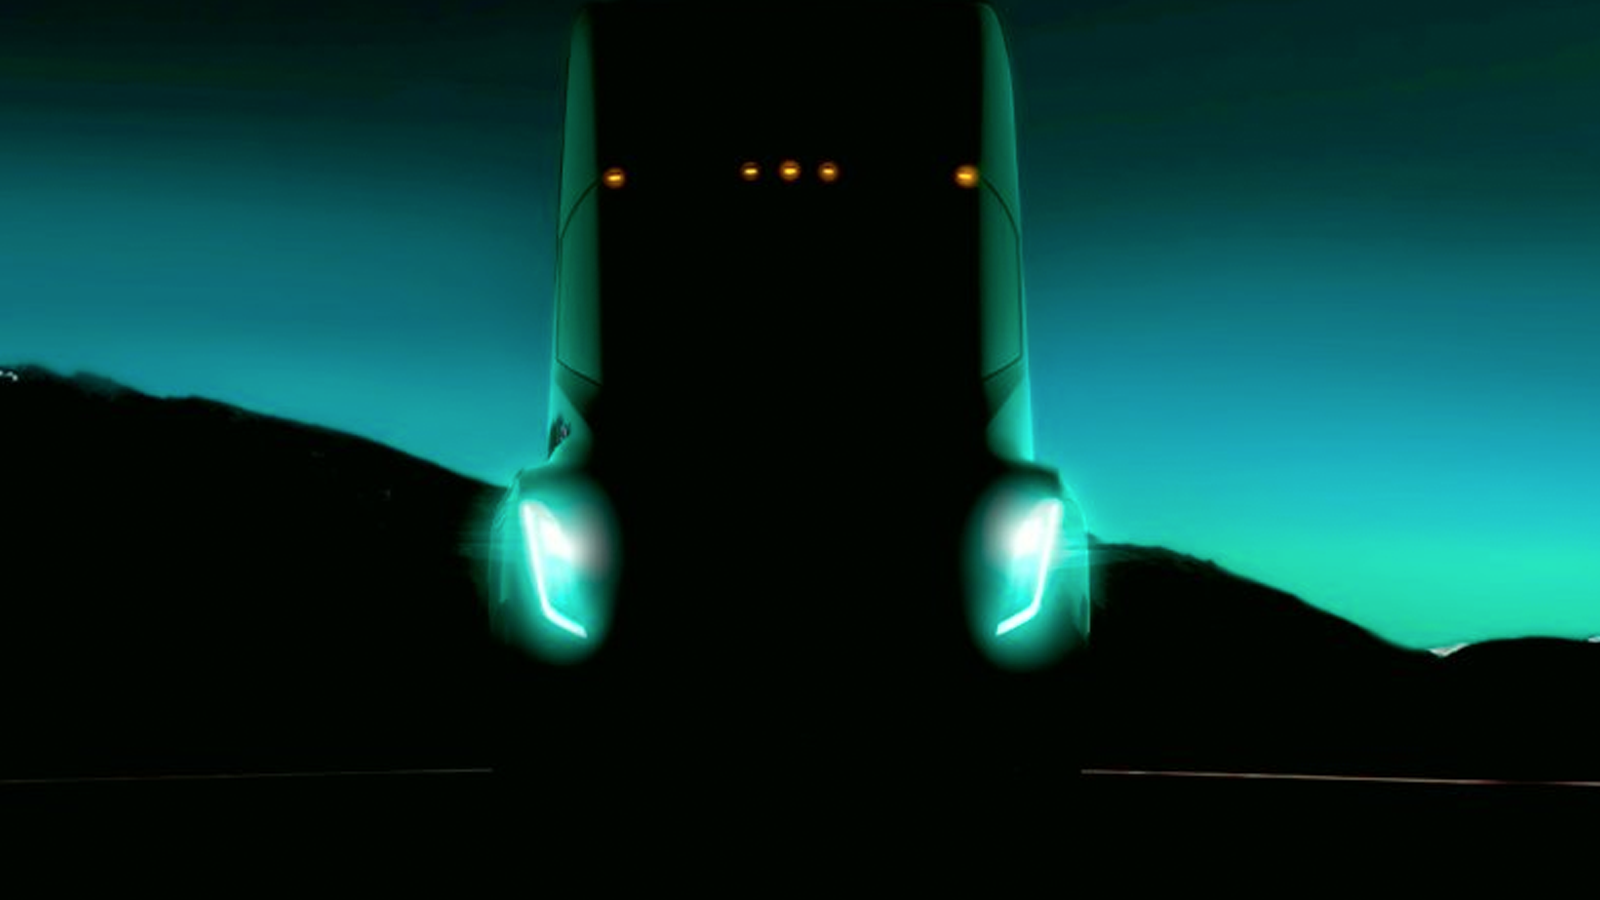 Tesla's upcoming electric semi truck will reportedly have self driving capabilities